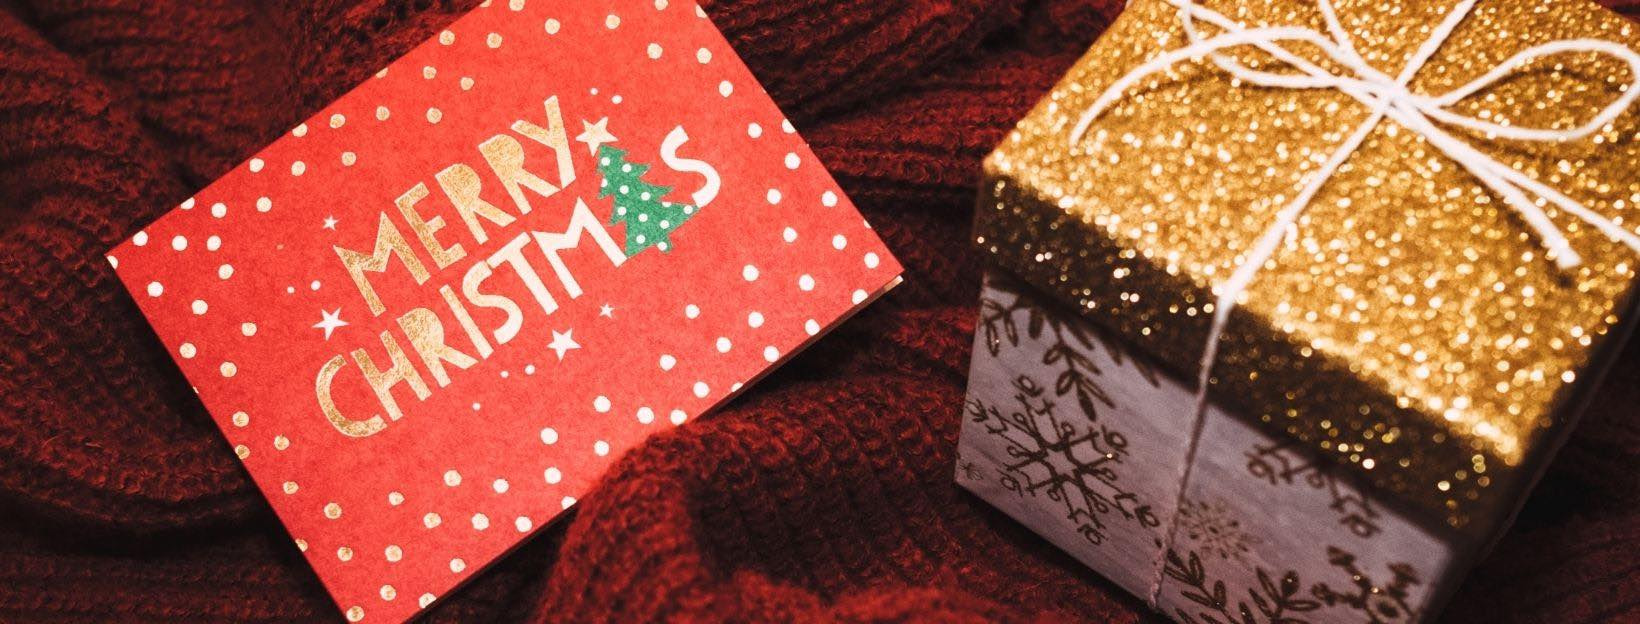 BANNER-Canva-MADGyKWsm6Q-white-and-brown-christmas-gift-box-with-card